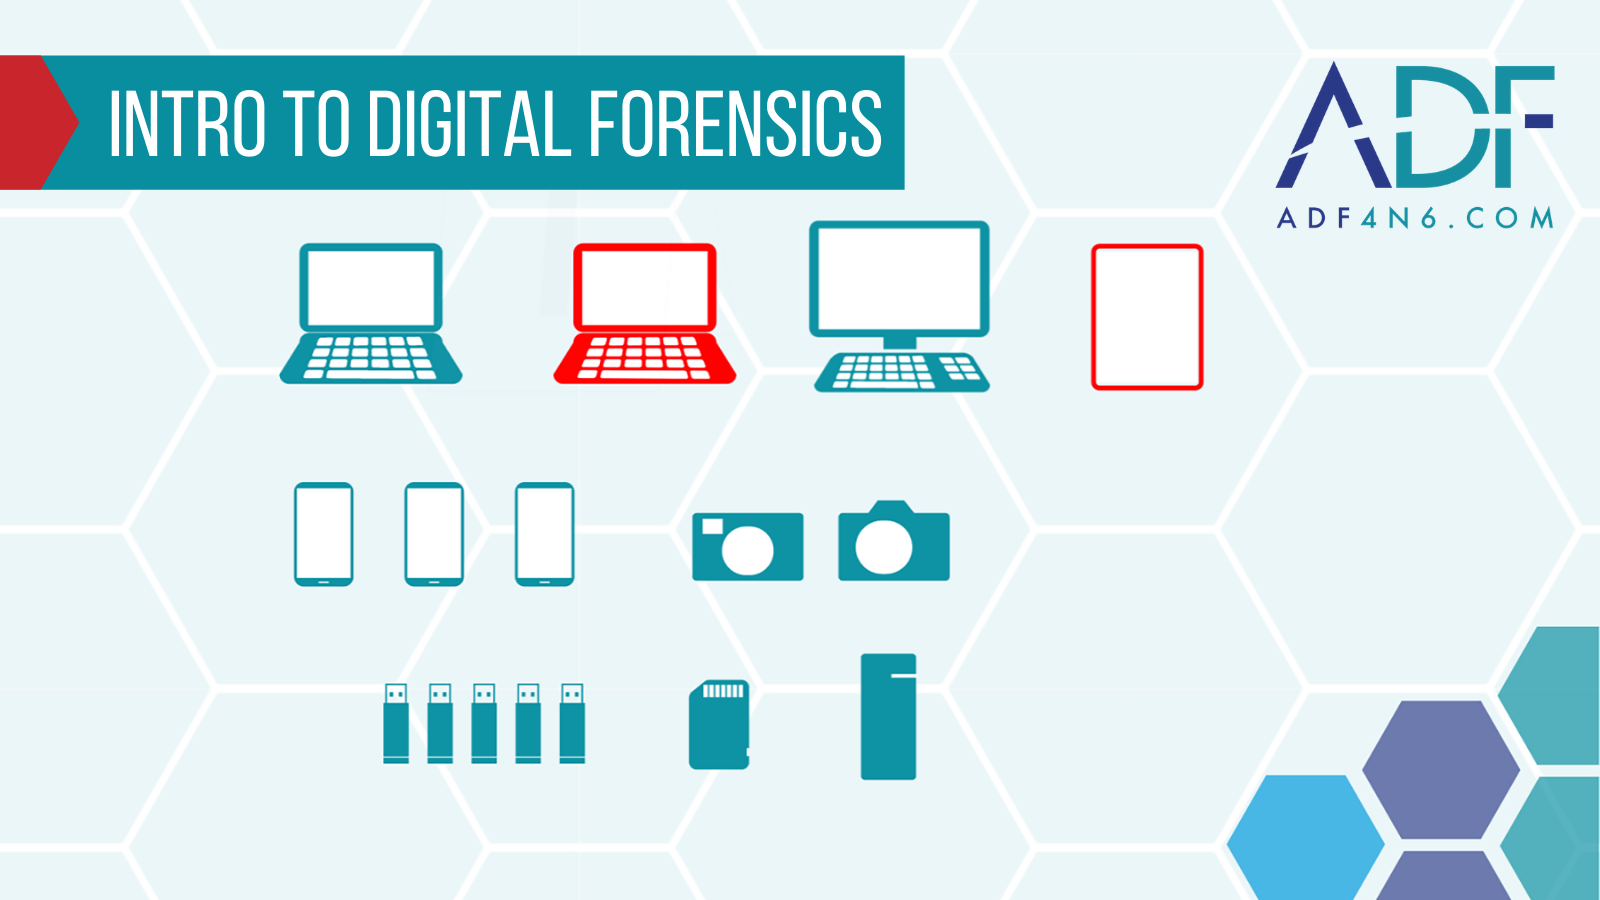 Intro to Digital Forensics